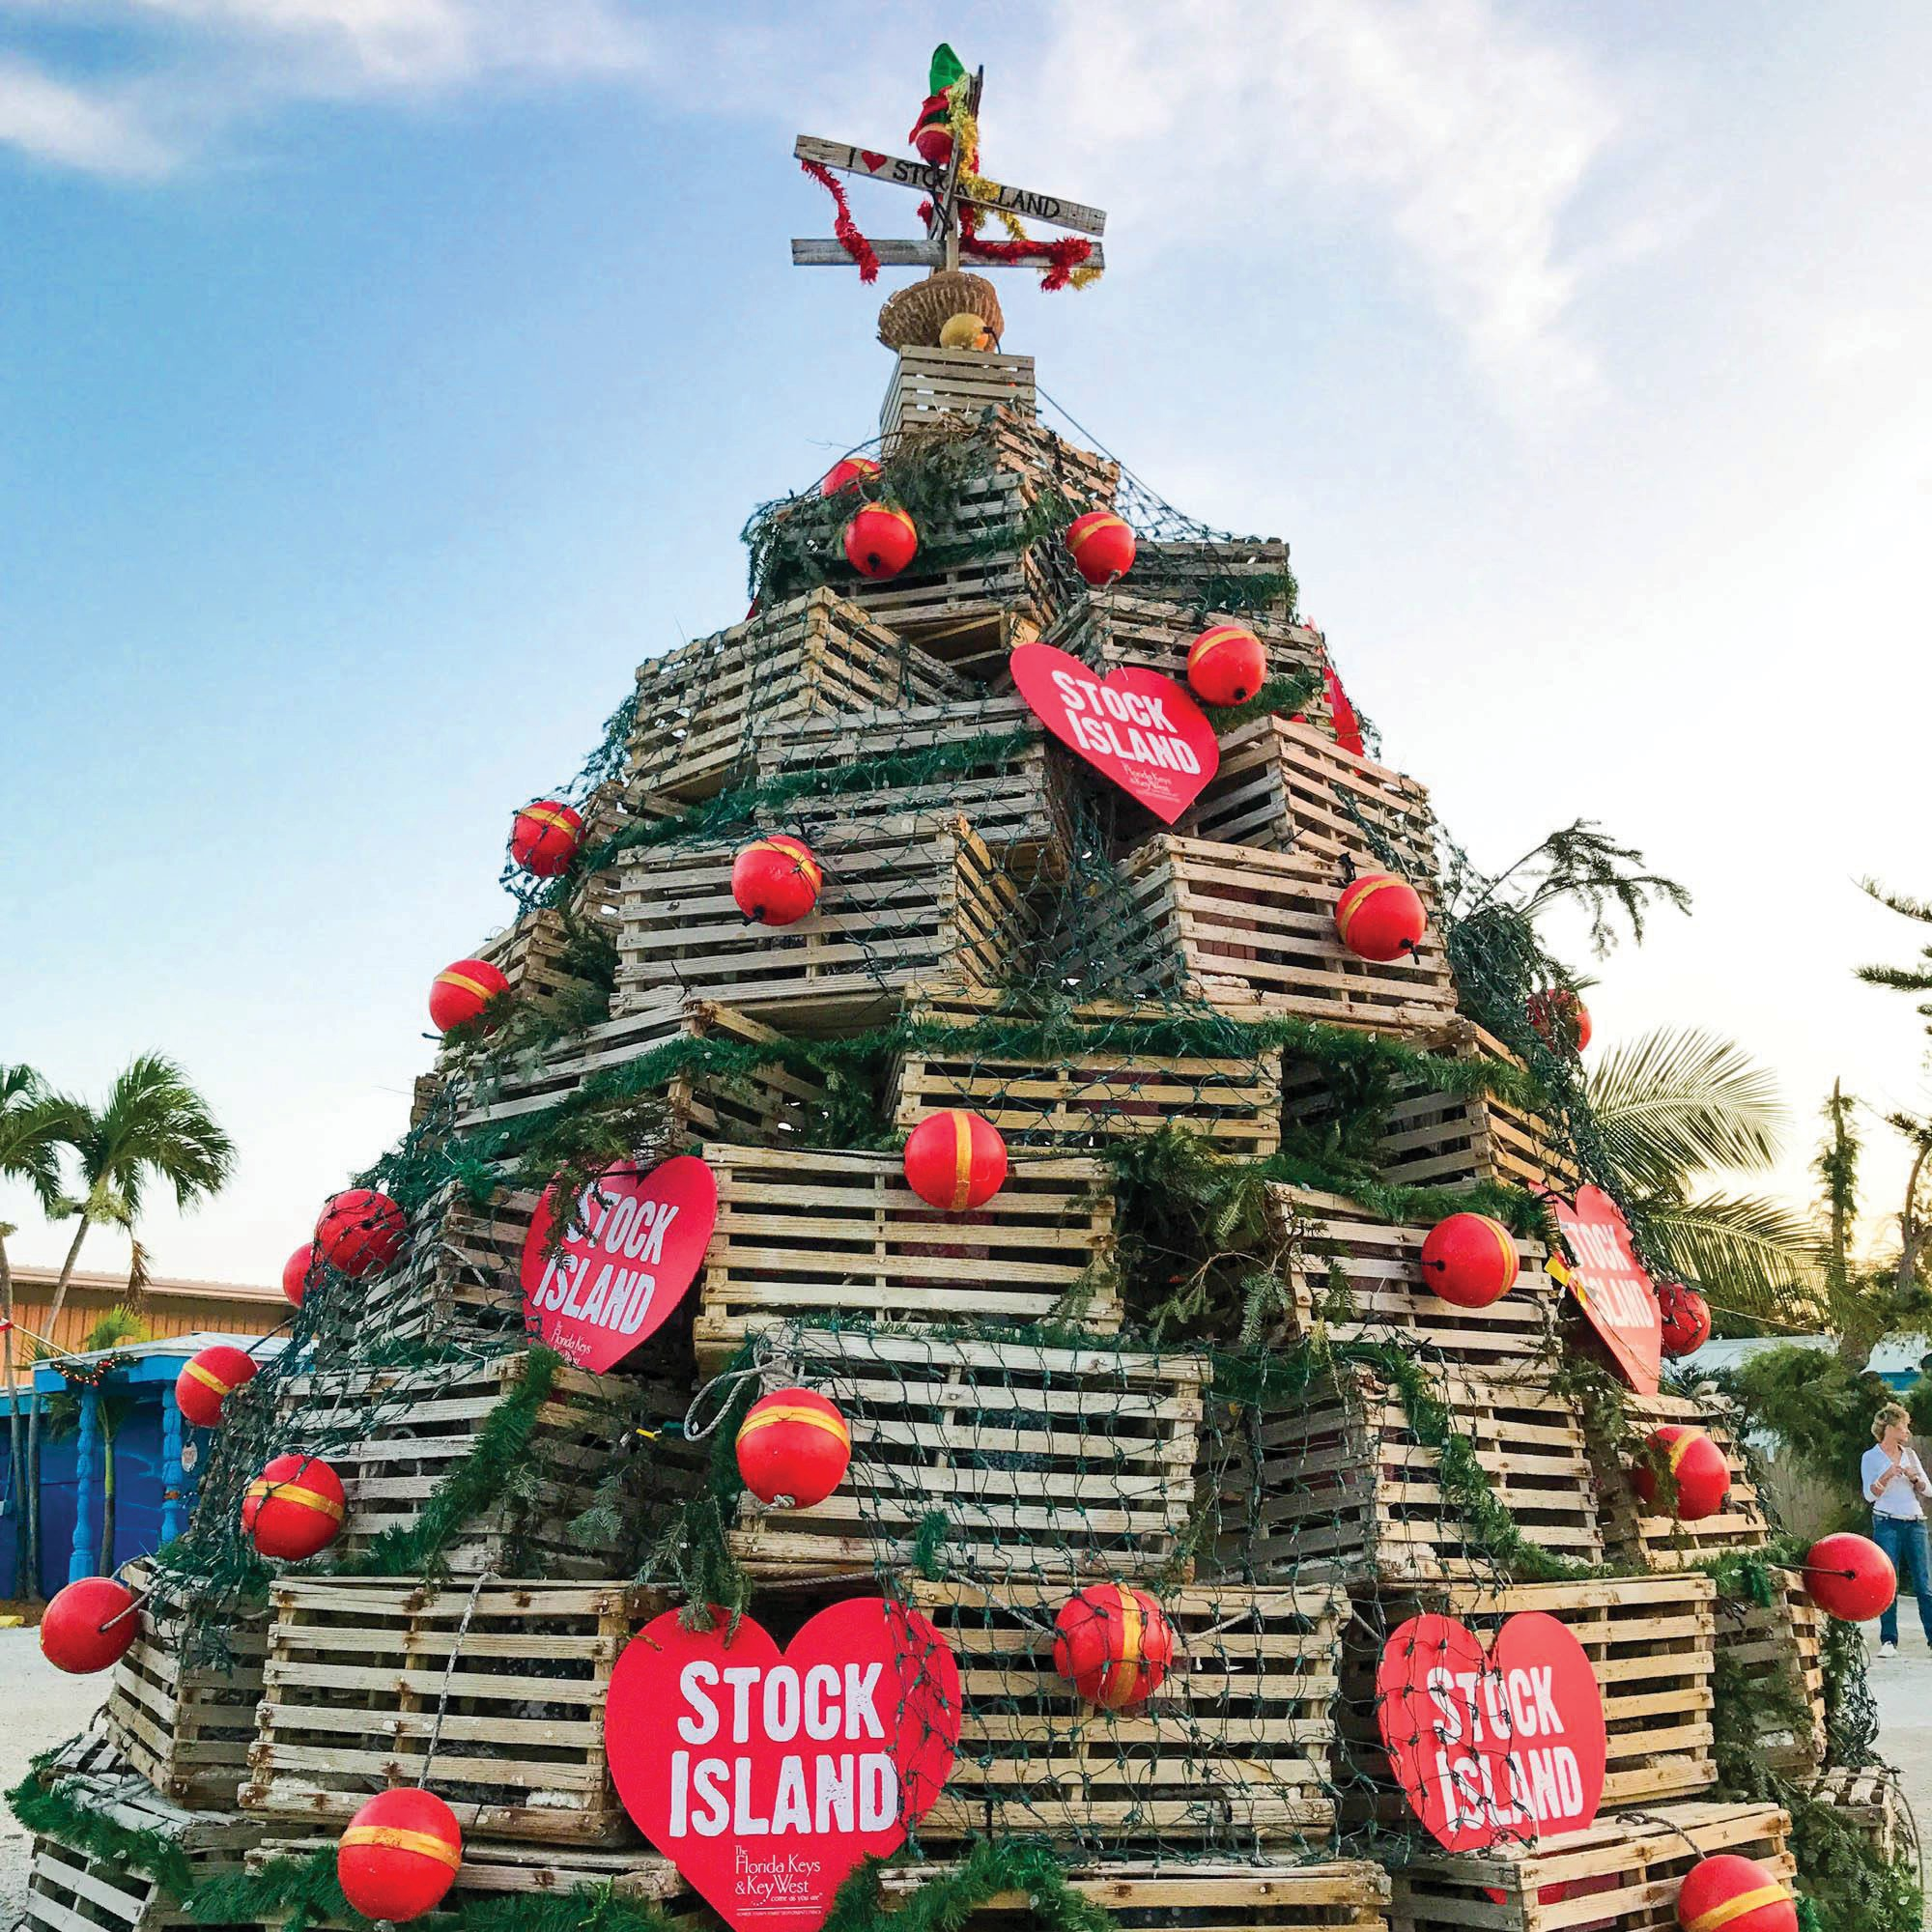 Above, the Stock Island Lobster Trap Holiday Tree. Left, lobster tails to sample.